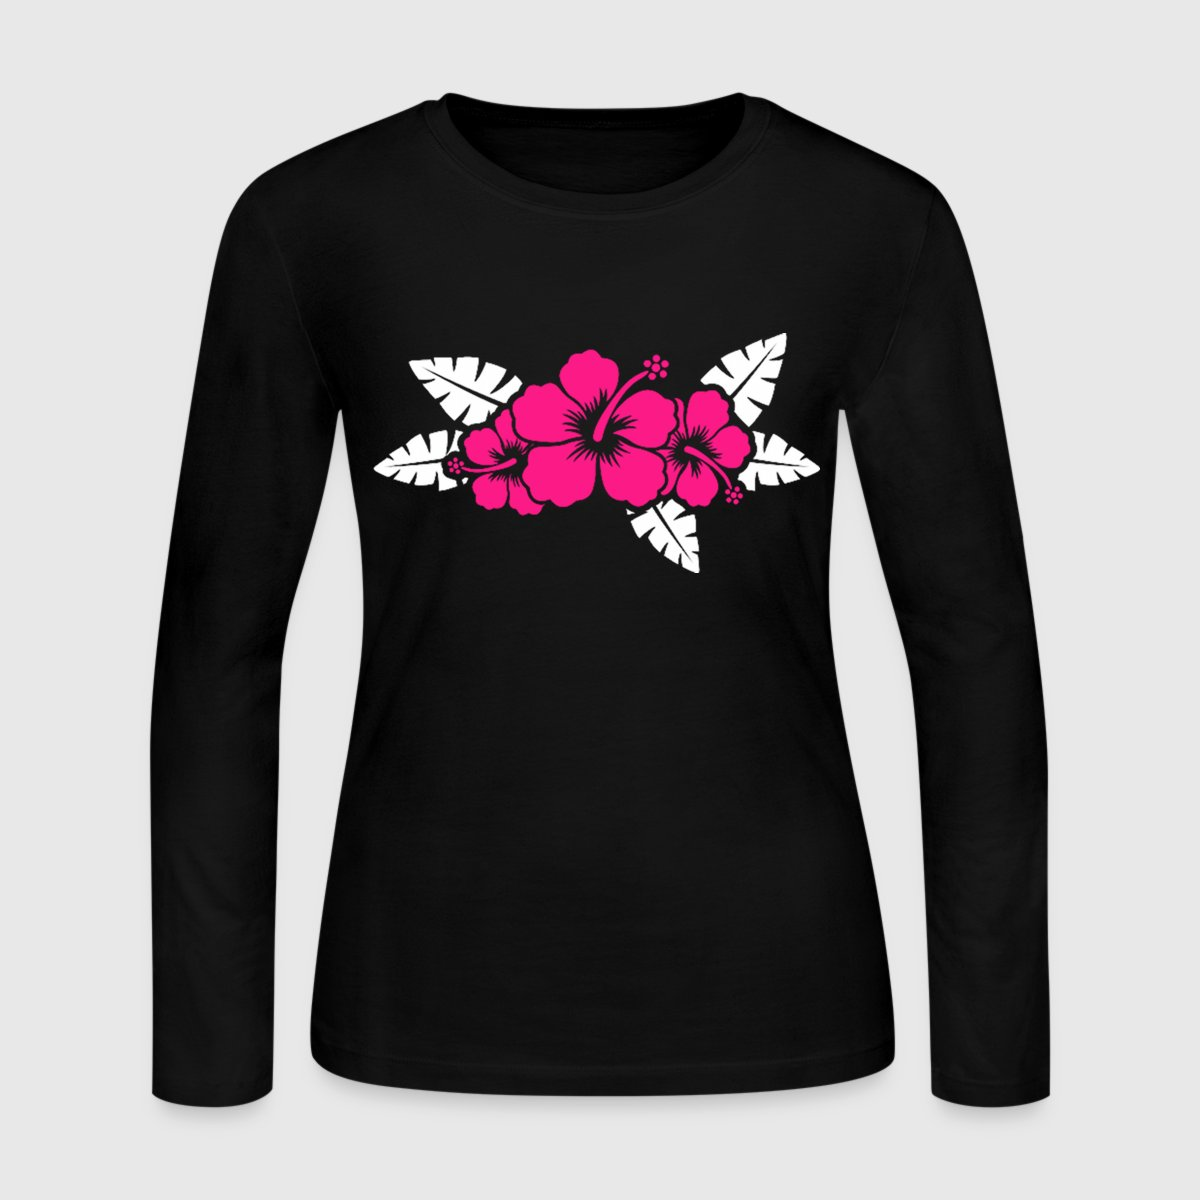 Hawaiian Flower Floral Design By Crowneapparel Spreadshirt